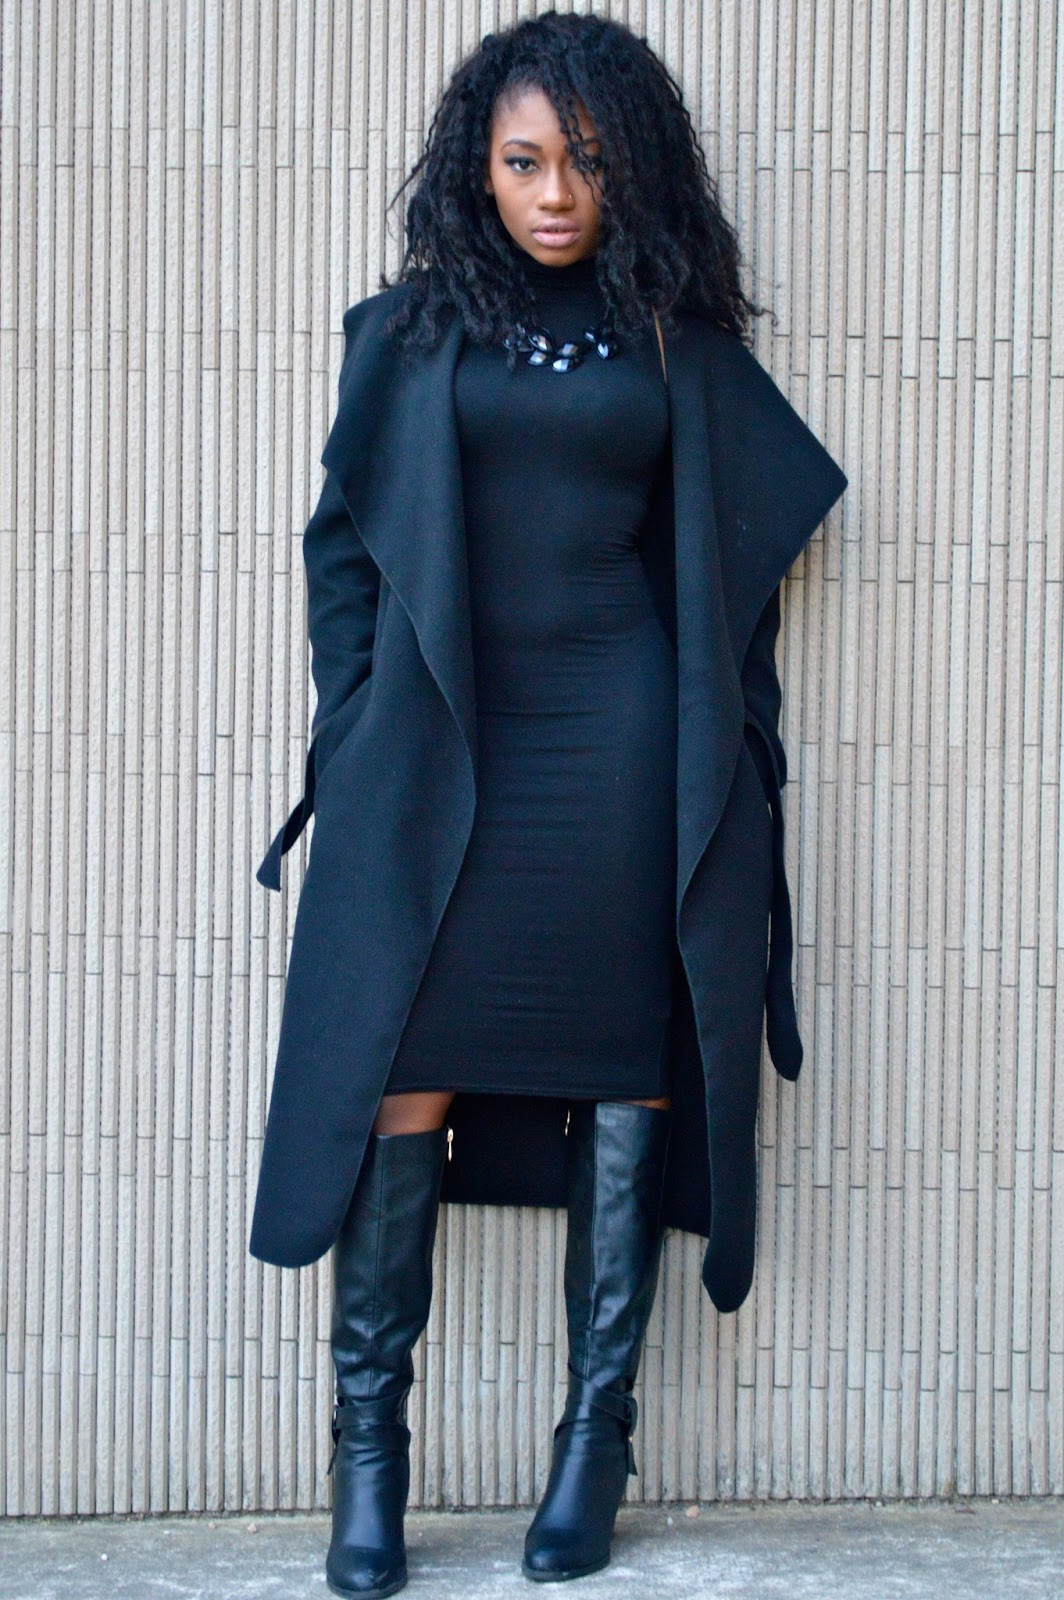 Back with another all black winter outfit which I\u0027m absolutely loving  because it is simple classy and chic.